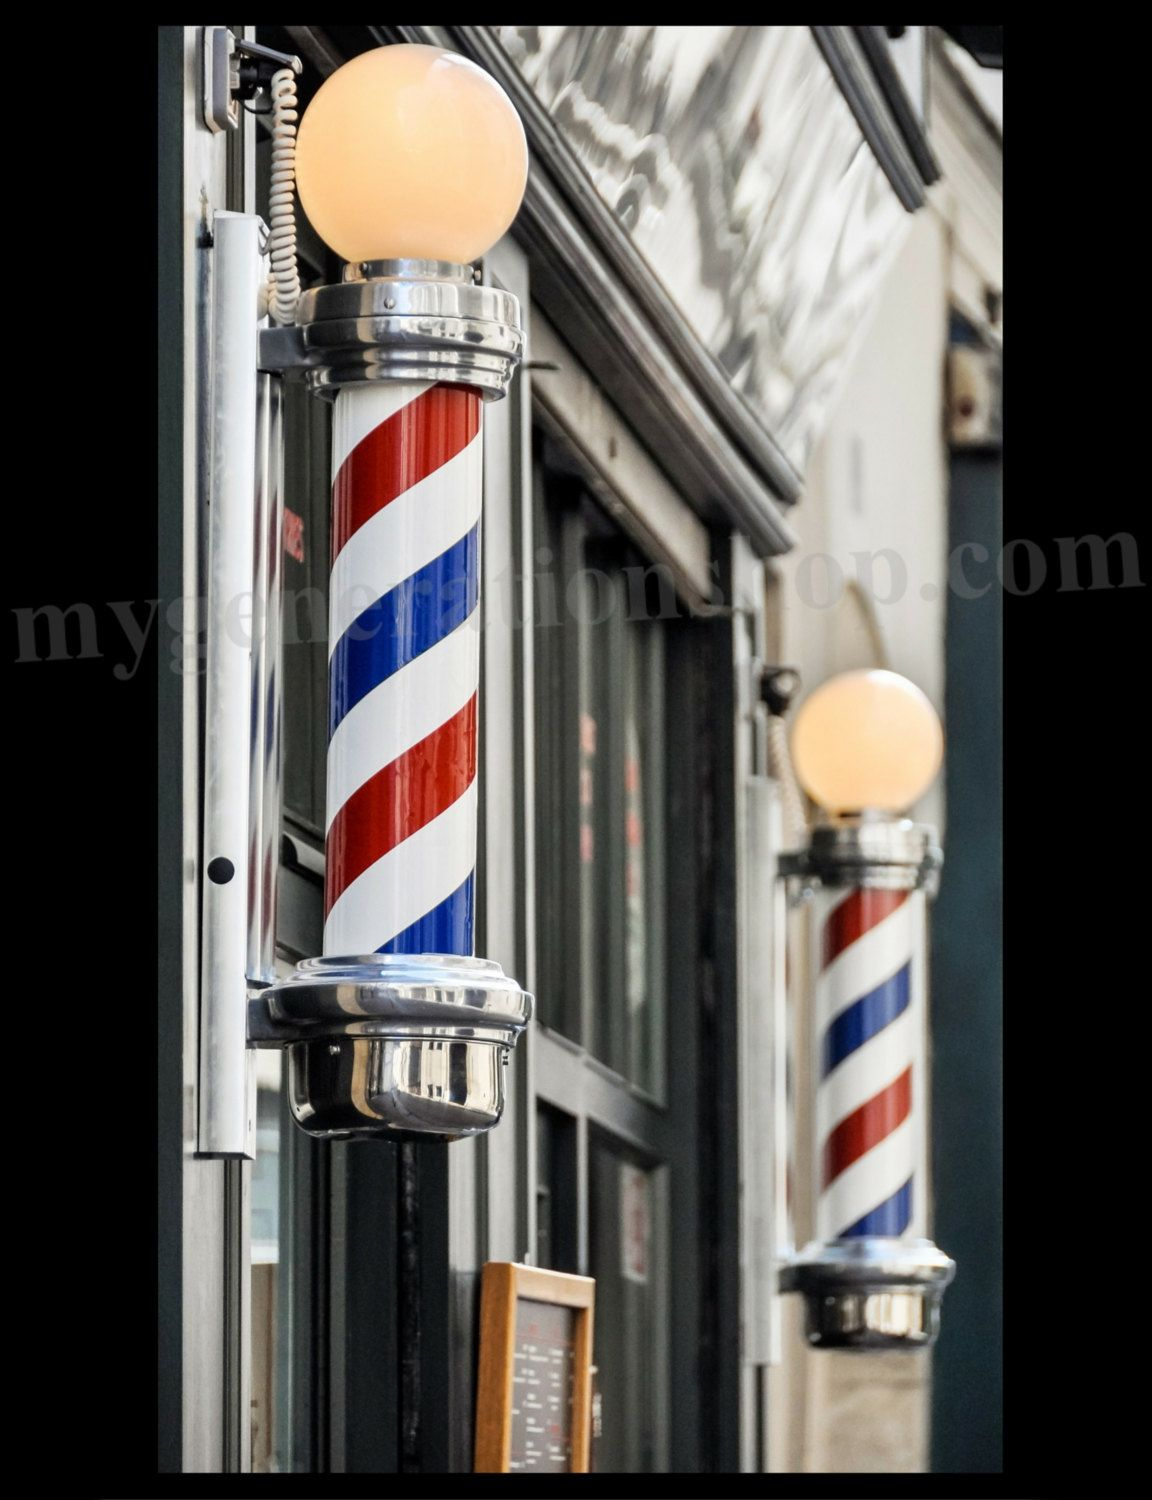 Barber Shop Poles Poster by MyGenerationShop on Etsy